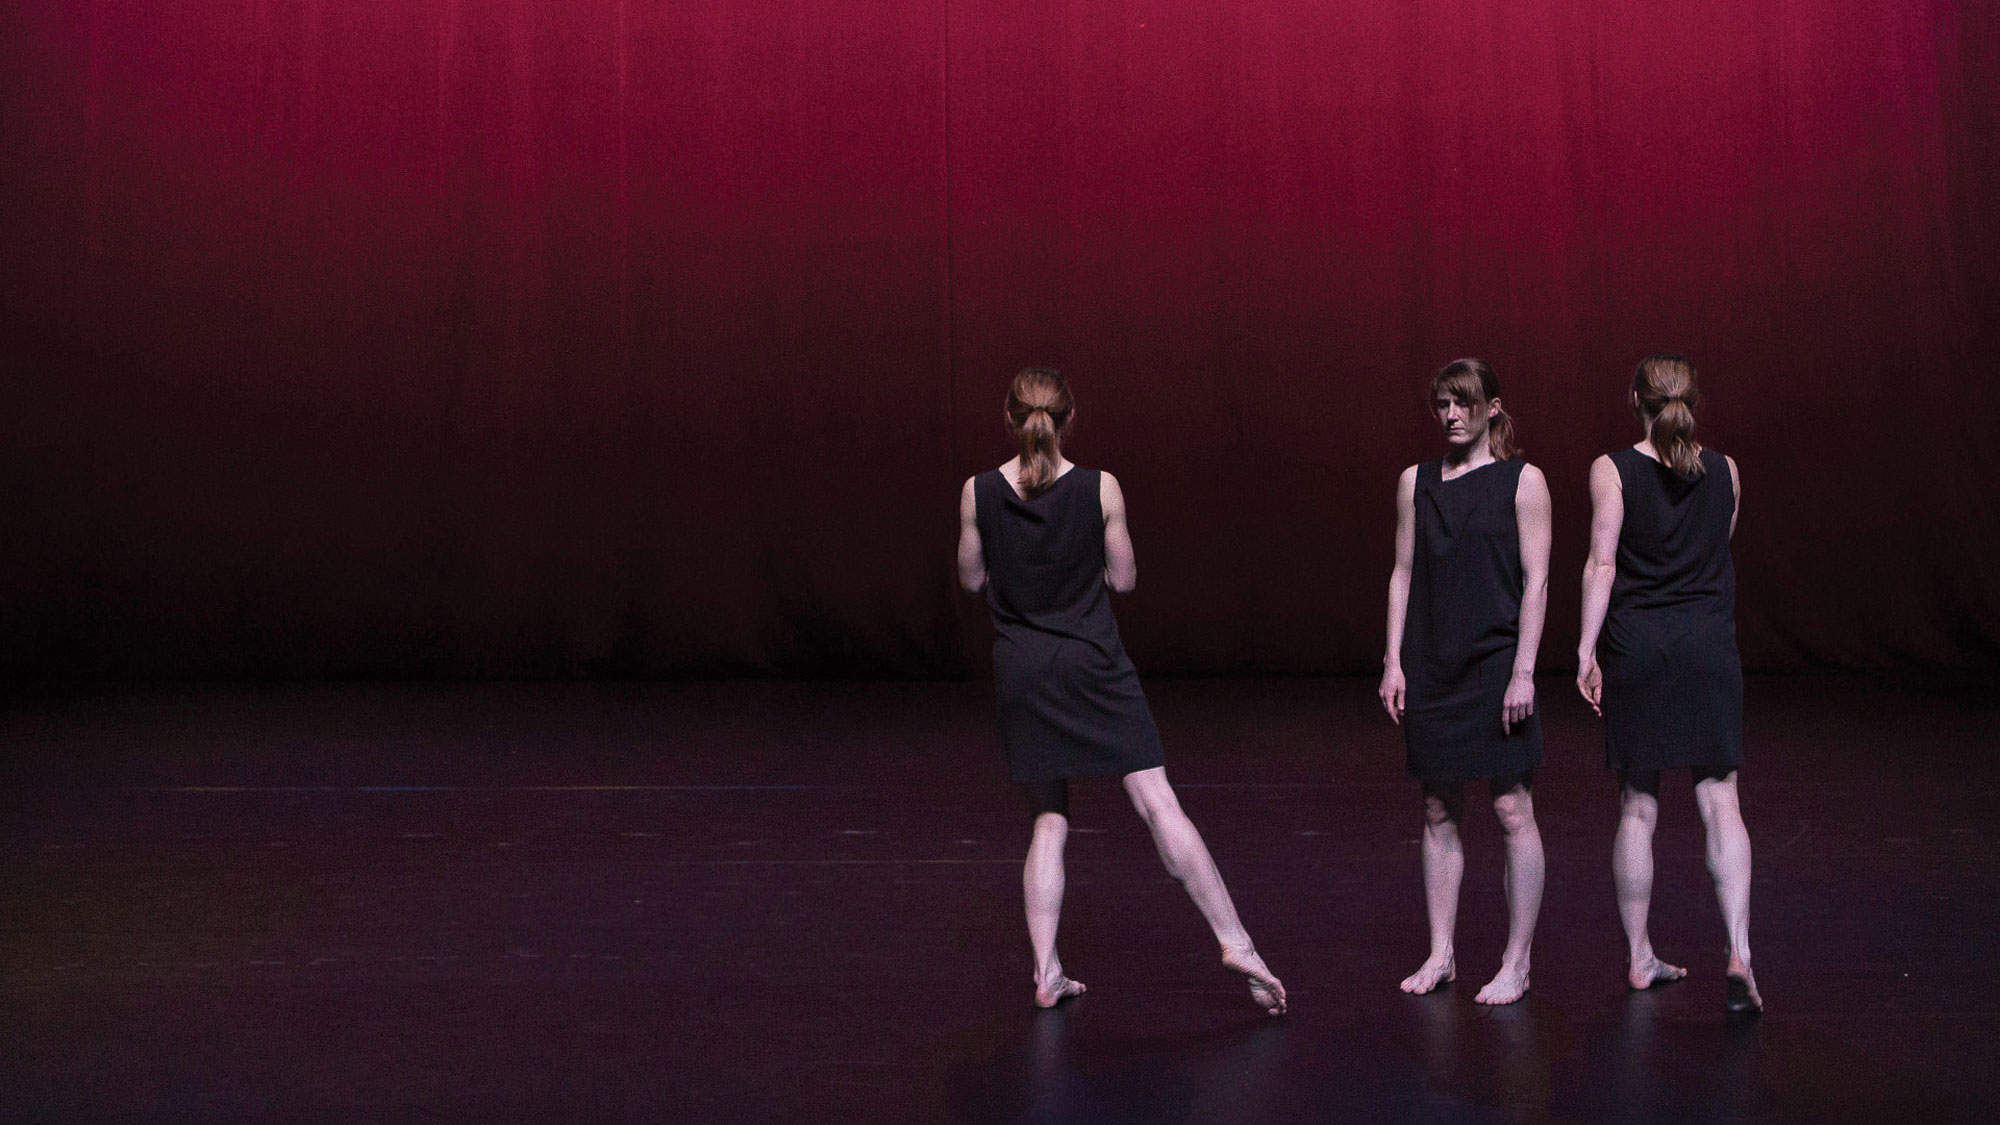 three dancers in black on stage